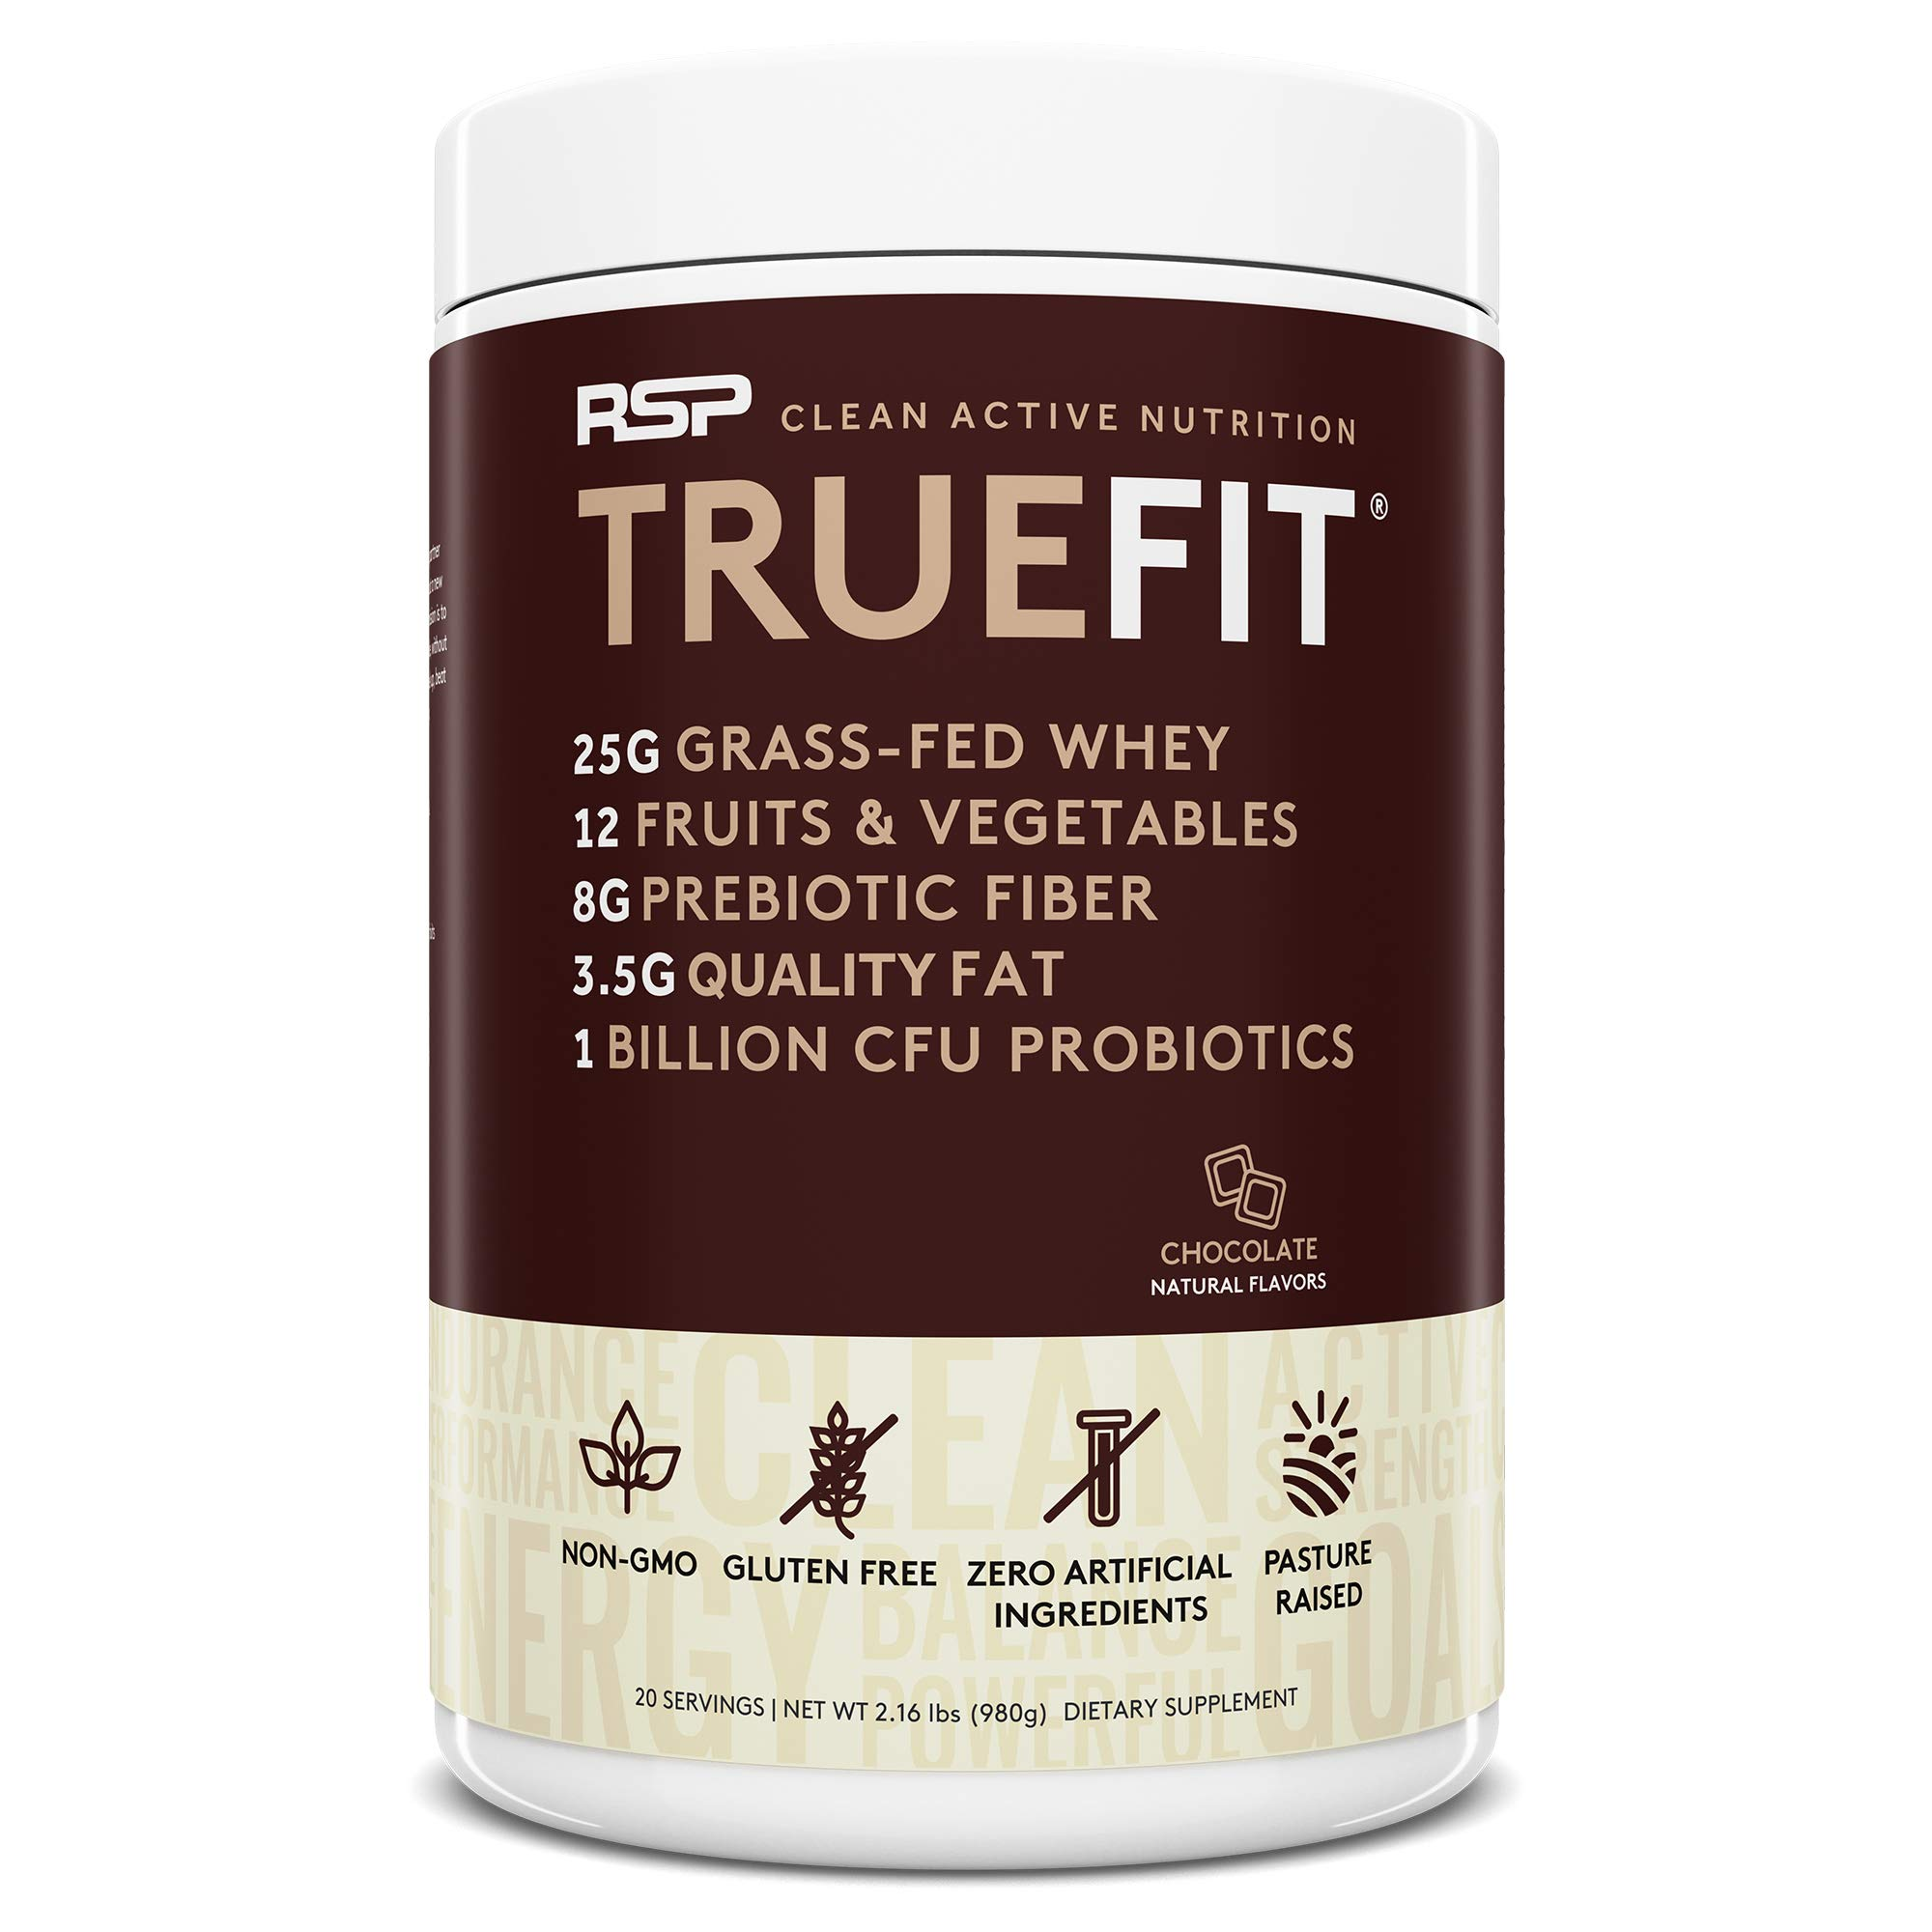 RSP TrueFit - Grass Fed Lean Meal Replacement Protein Shake, All Natural Whey Protein Powder with Fiber & Probiotics, Non-GMO, Gluten-Free & No Artificial Sweeteners, 2.0 LB Choc (Packaging May Vary) by RSP Nutrition